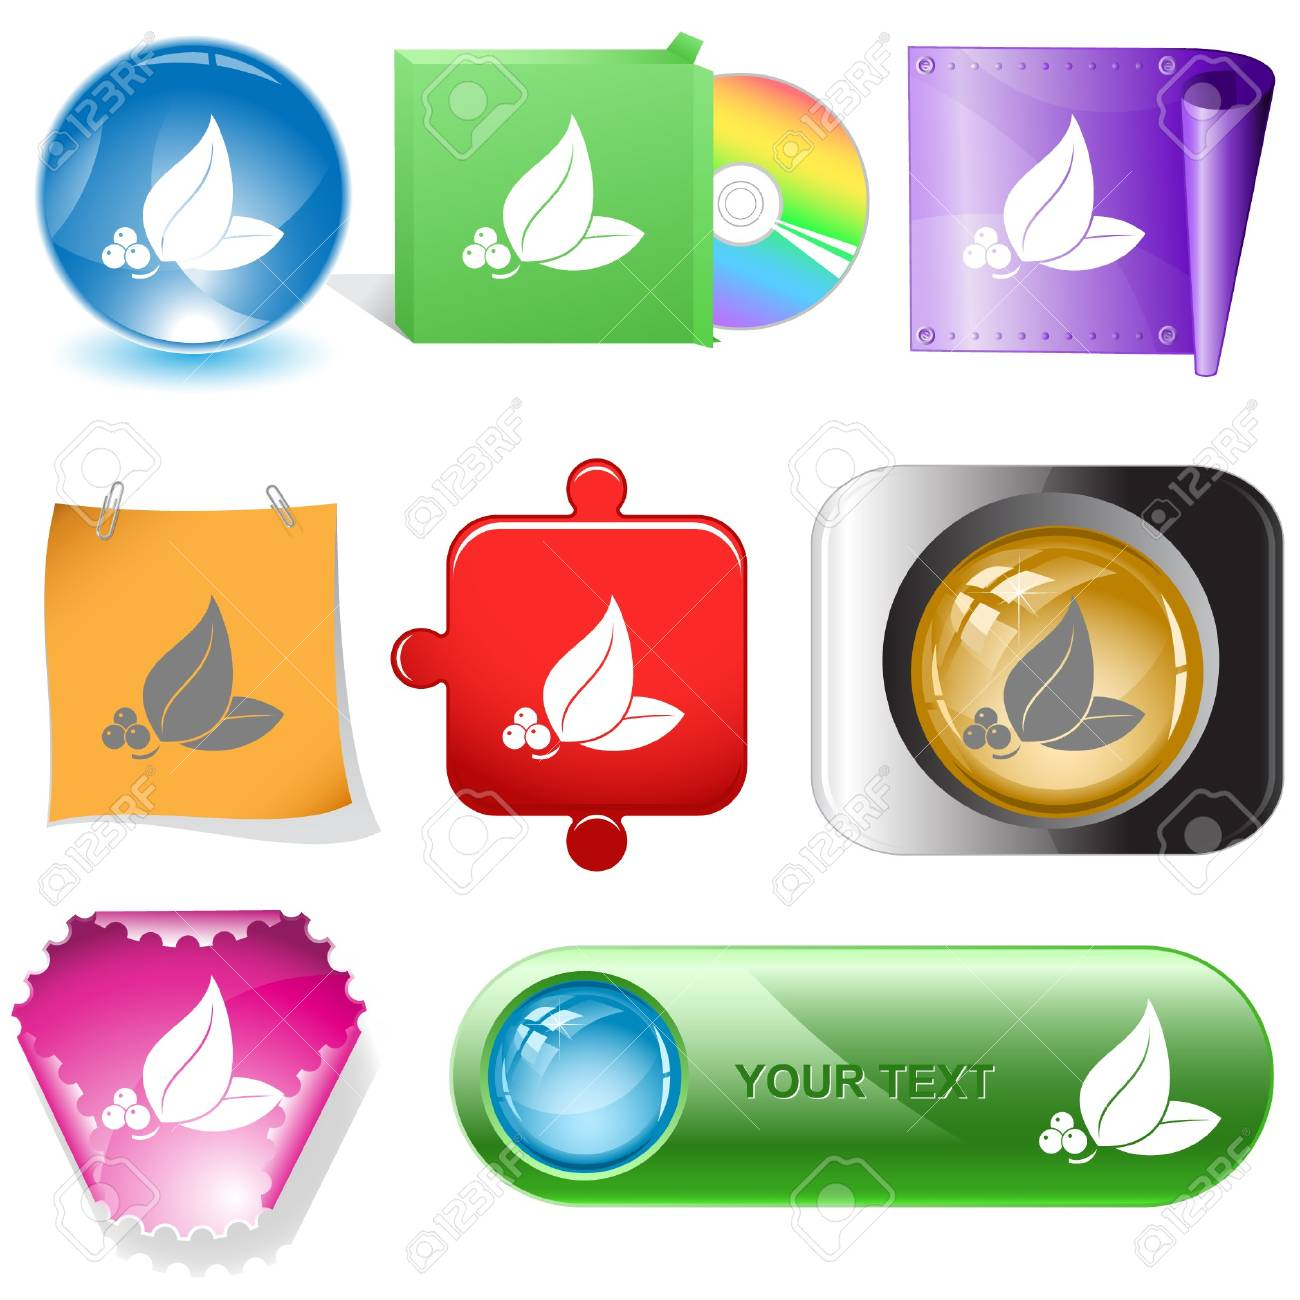 Leaf.   internet buttons. Stock Vector - 6862917